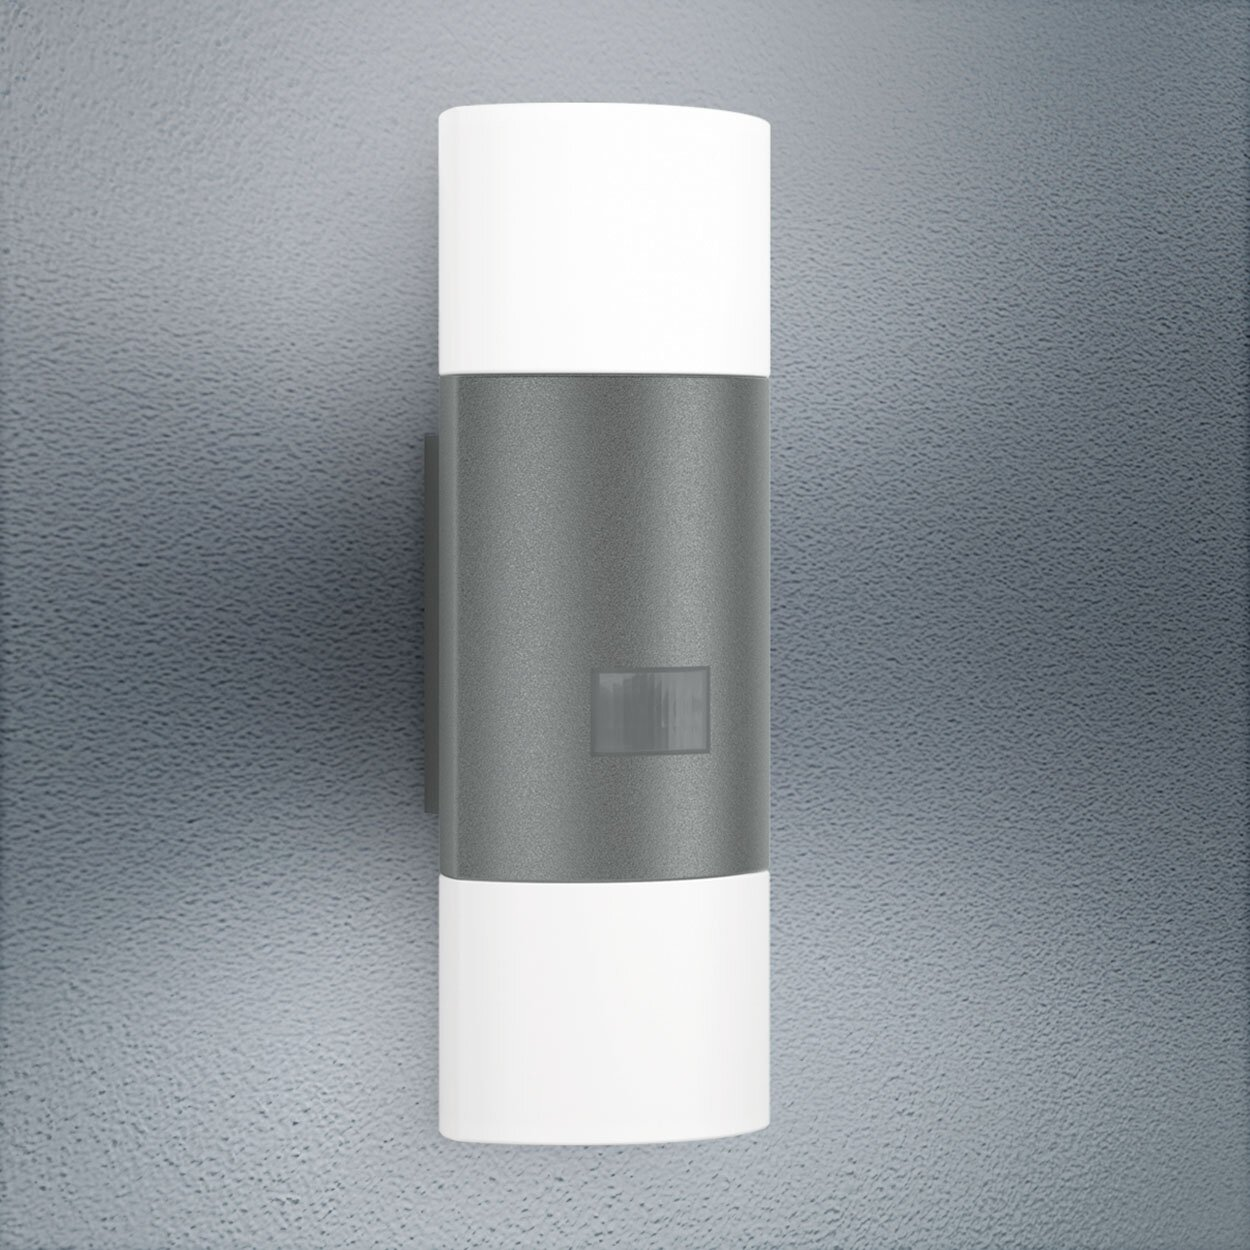 Steinel 1 Light Outdoor Sconce Wayfair Uk